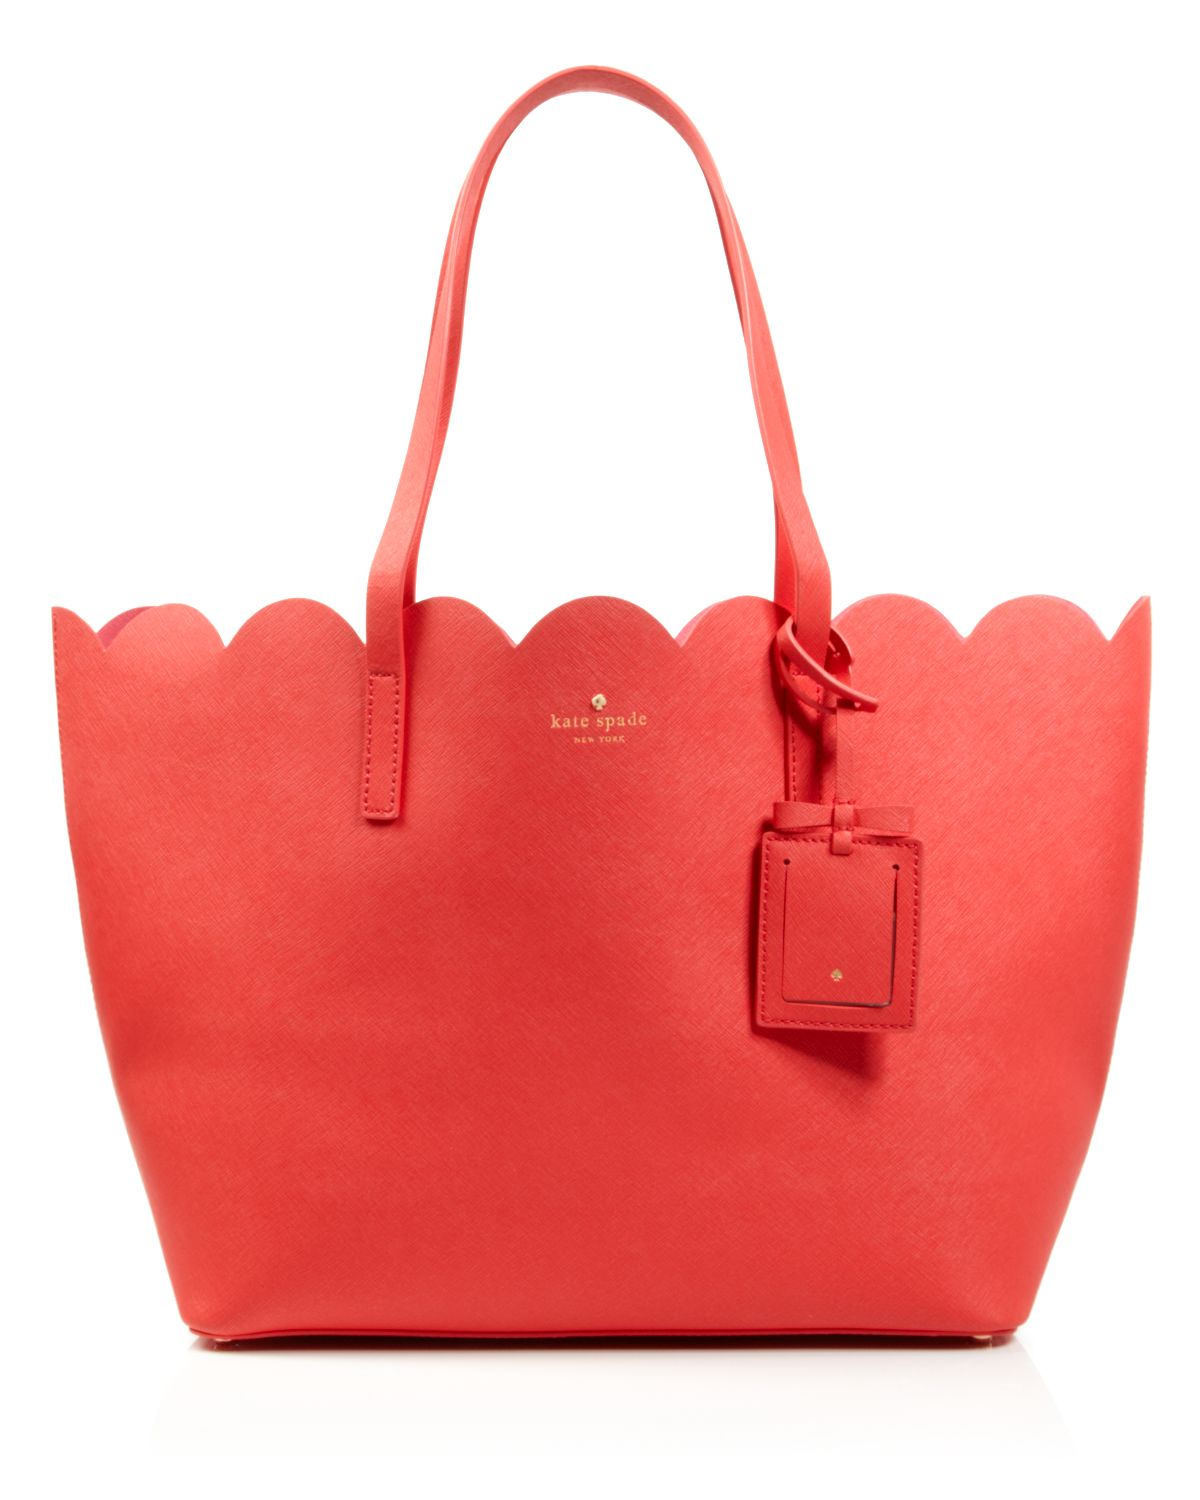 Lyst Kate Spade New York Tote Lily Avenue Carrigan In Red